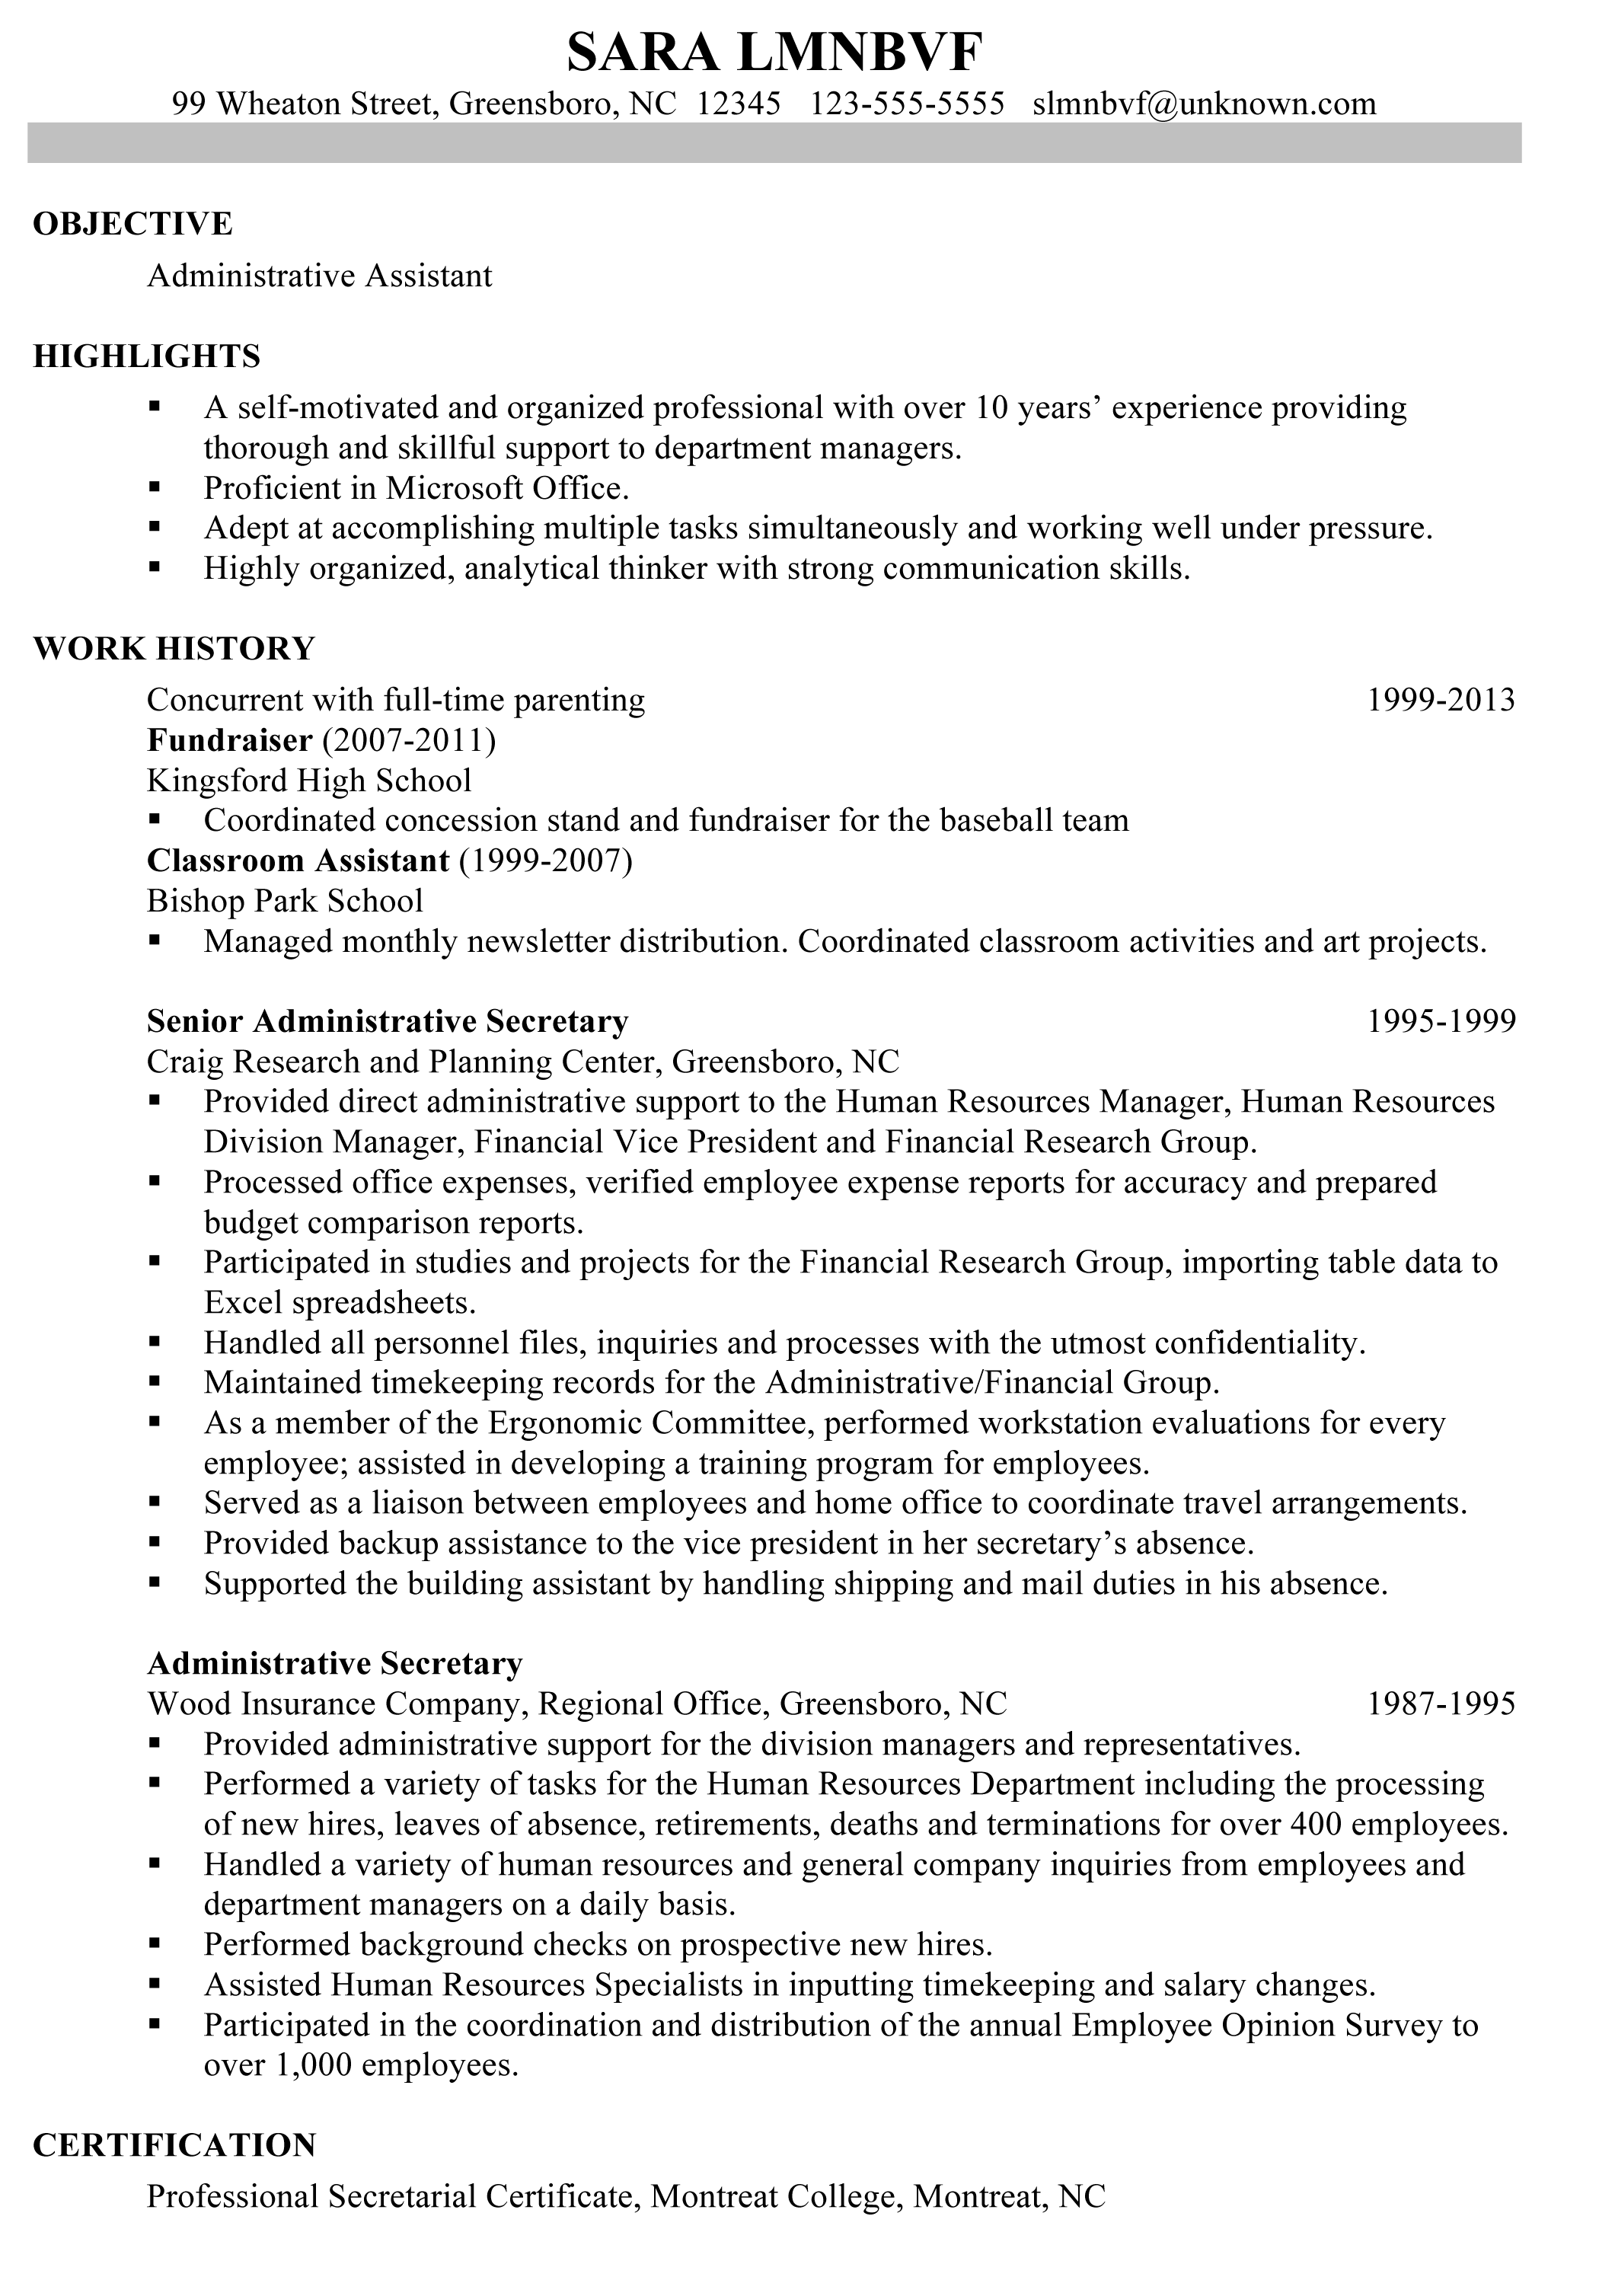 Resume Reference Examples Matching Resume Cover Letter Job Reference Page Samples